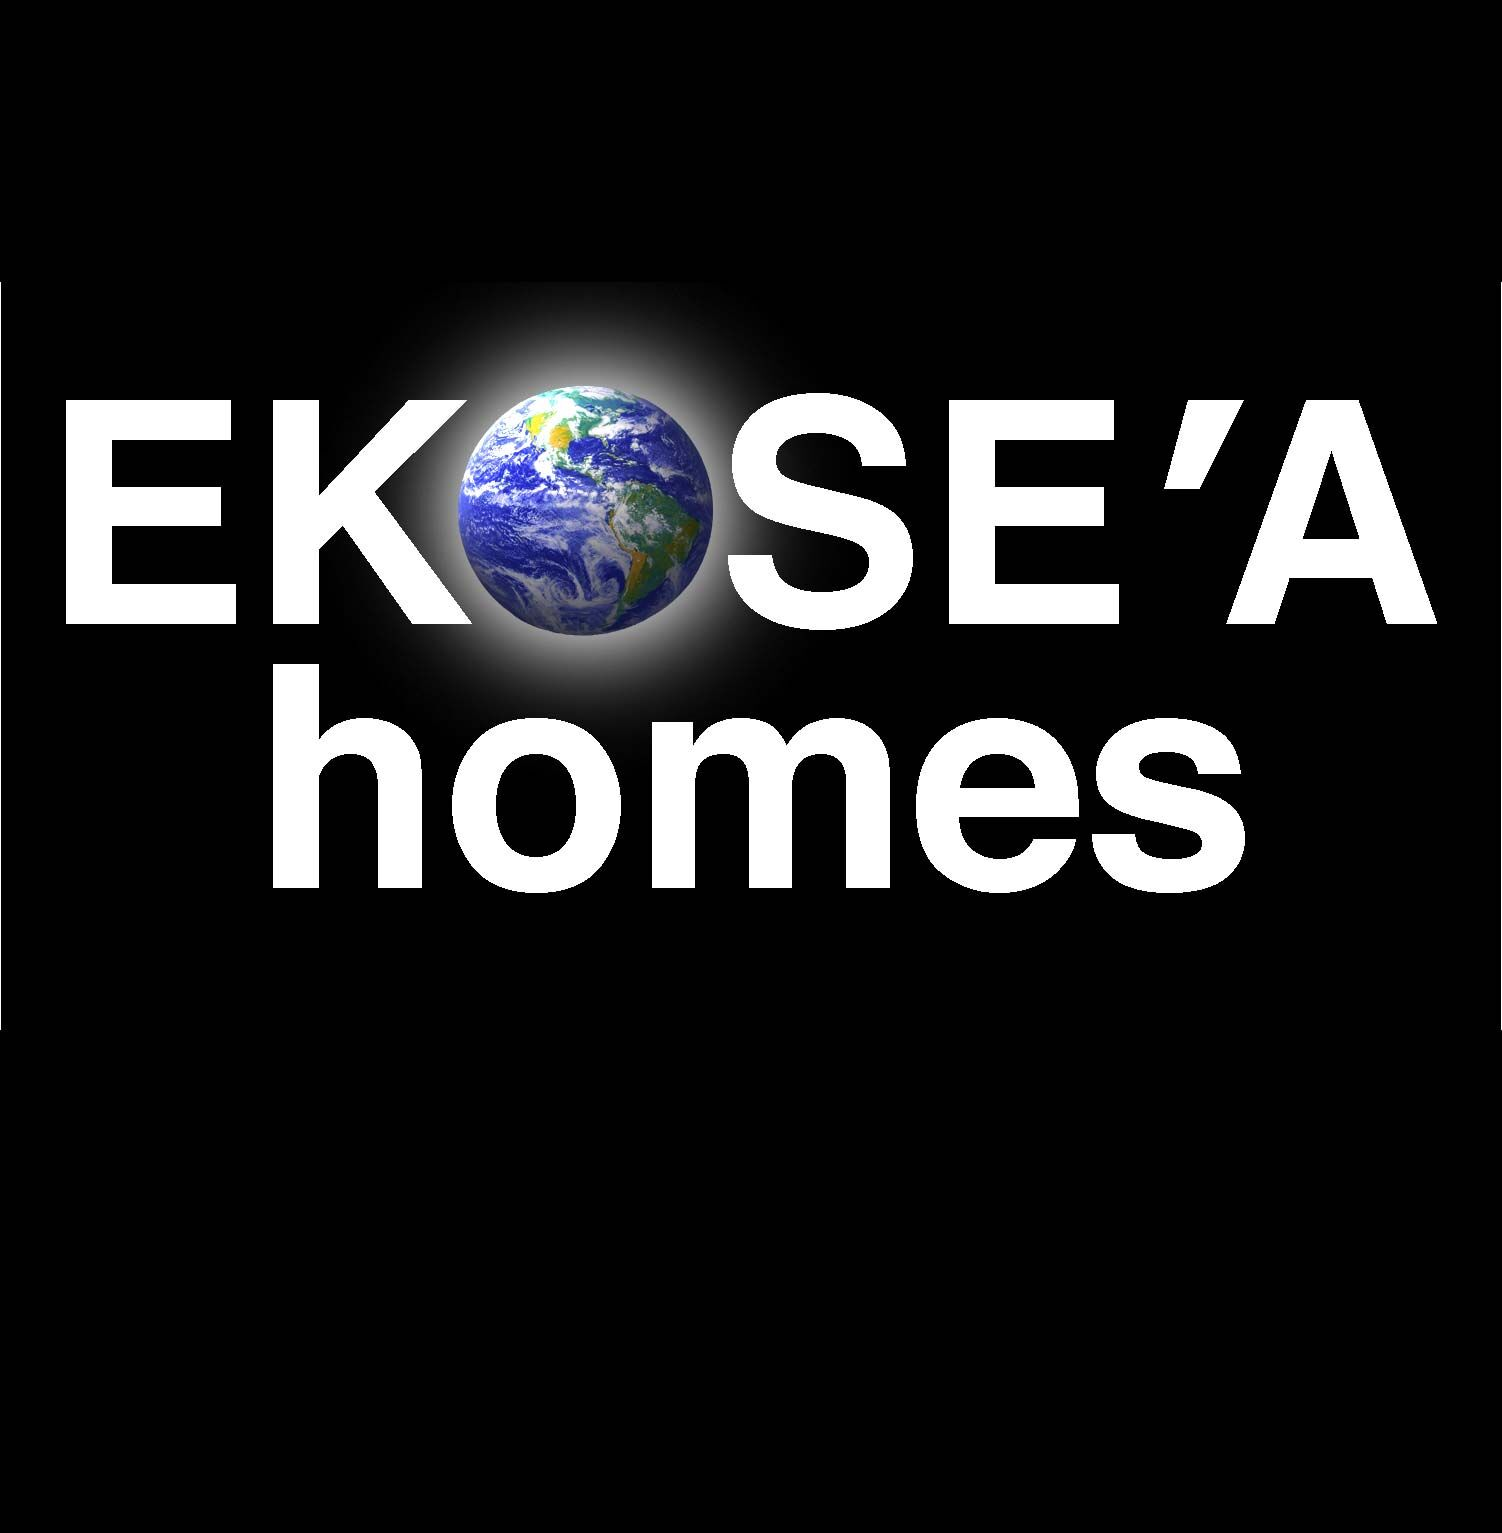 Ekose'a Homes - Free one hour consultation with homeowners to review a potential remodeling and/or addition project of their home or apartment building. A review would include a walk-thru of the project and general discussion of the steps involved in the development process (e.g., due diligence / code compliance, design, City permitting, construction) and budget considerations.